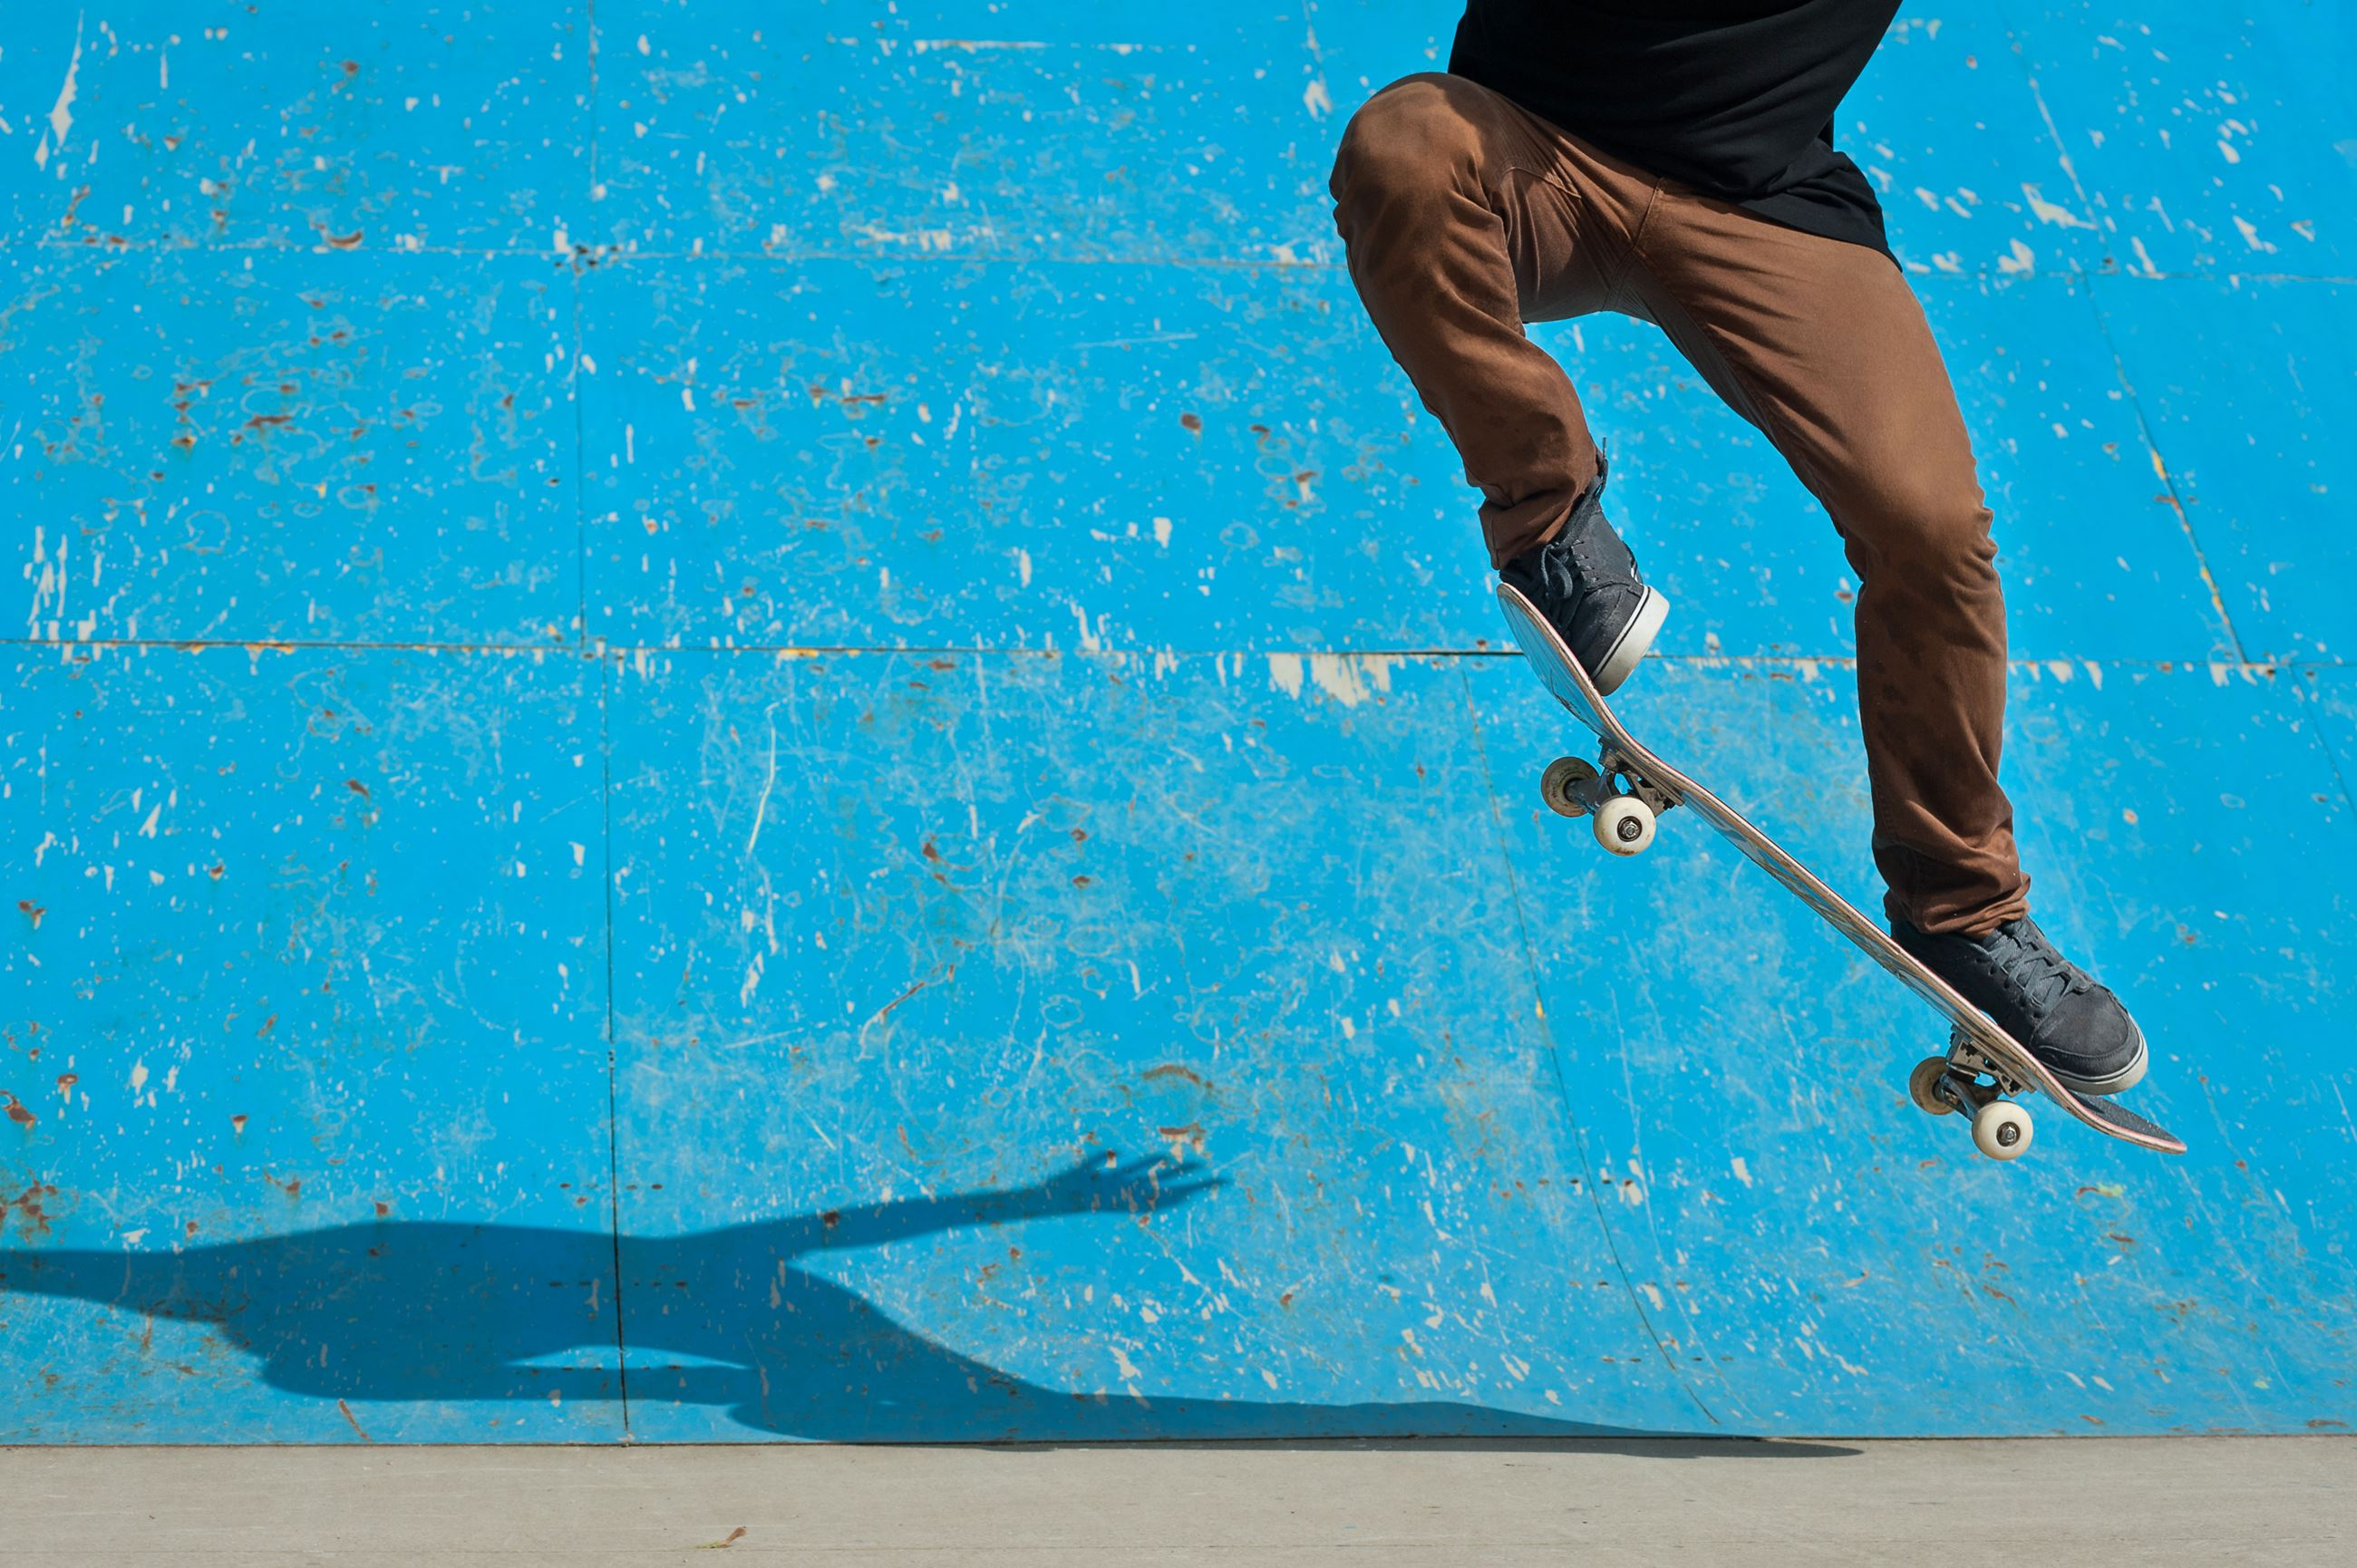 Guy on skateboard next to blue ramp with brown pants and black shirt doing an ollie